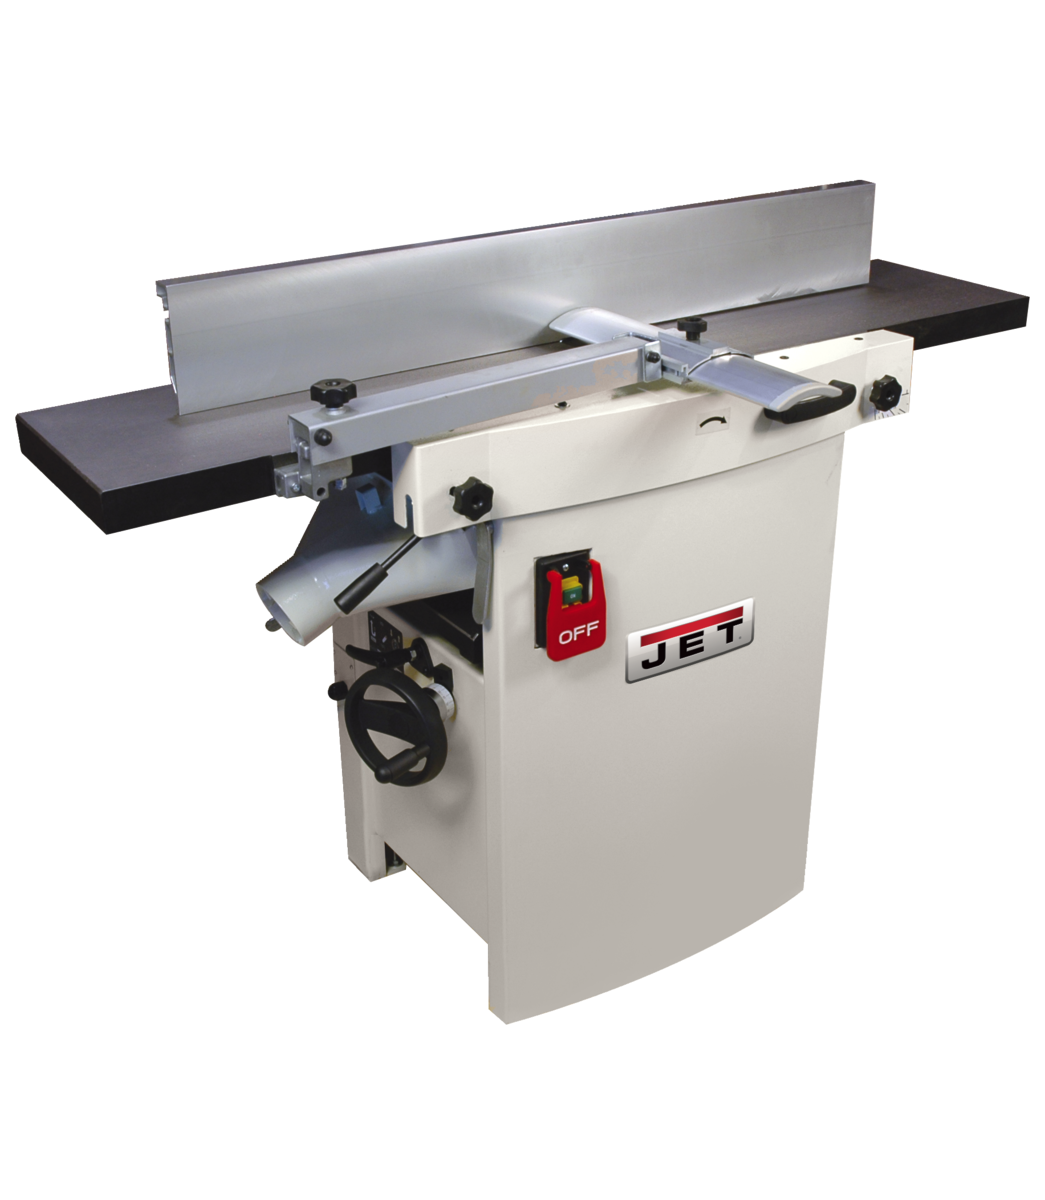 "Jet JJP-12, 12"" Planer/Jointer 3HP 1PH 230V 708475"